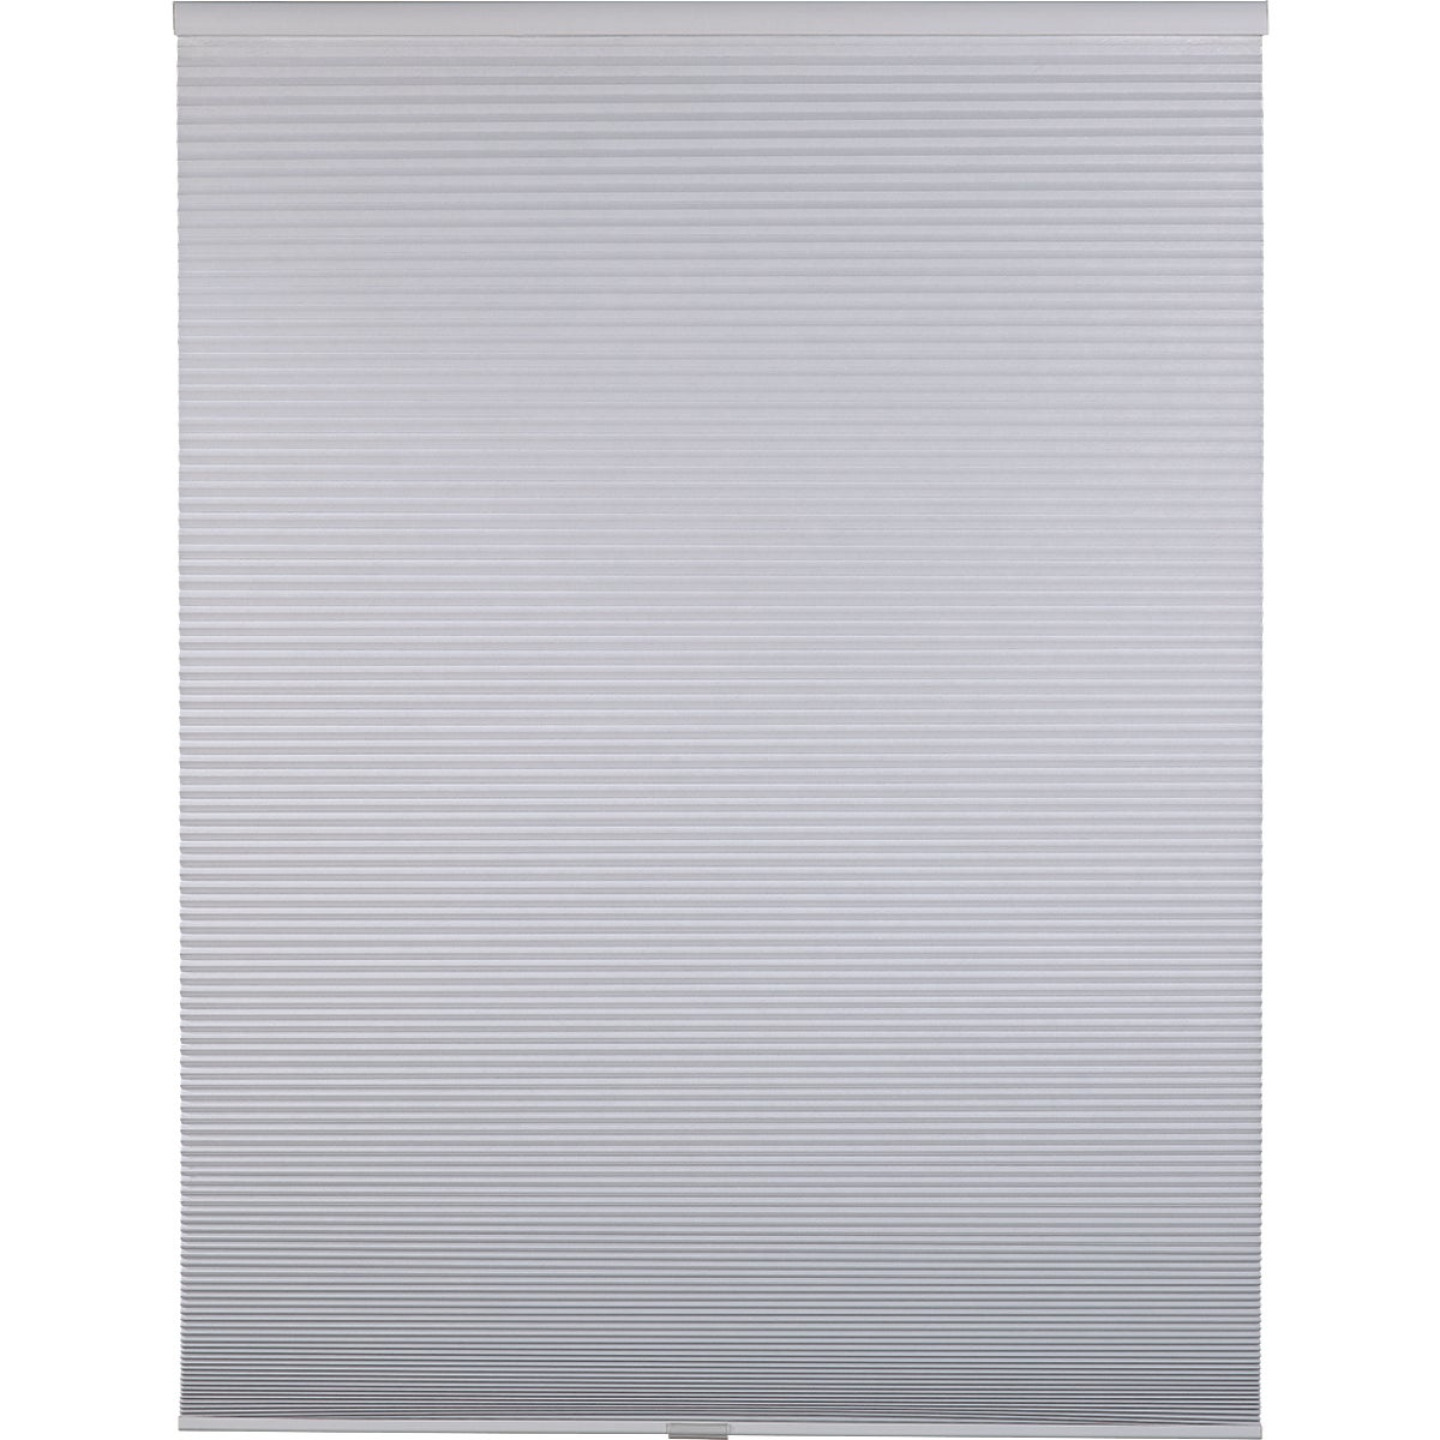 Home Impressions 1 In. Room Darkening Cellular White 72 In. x 72 In. Cordless Shade Image 1